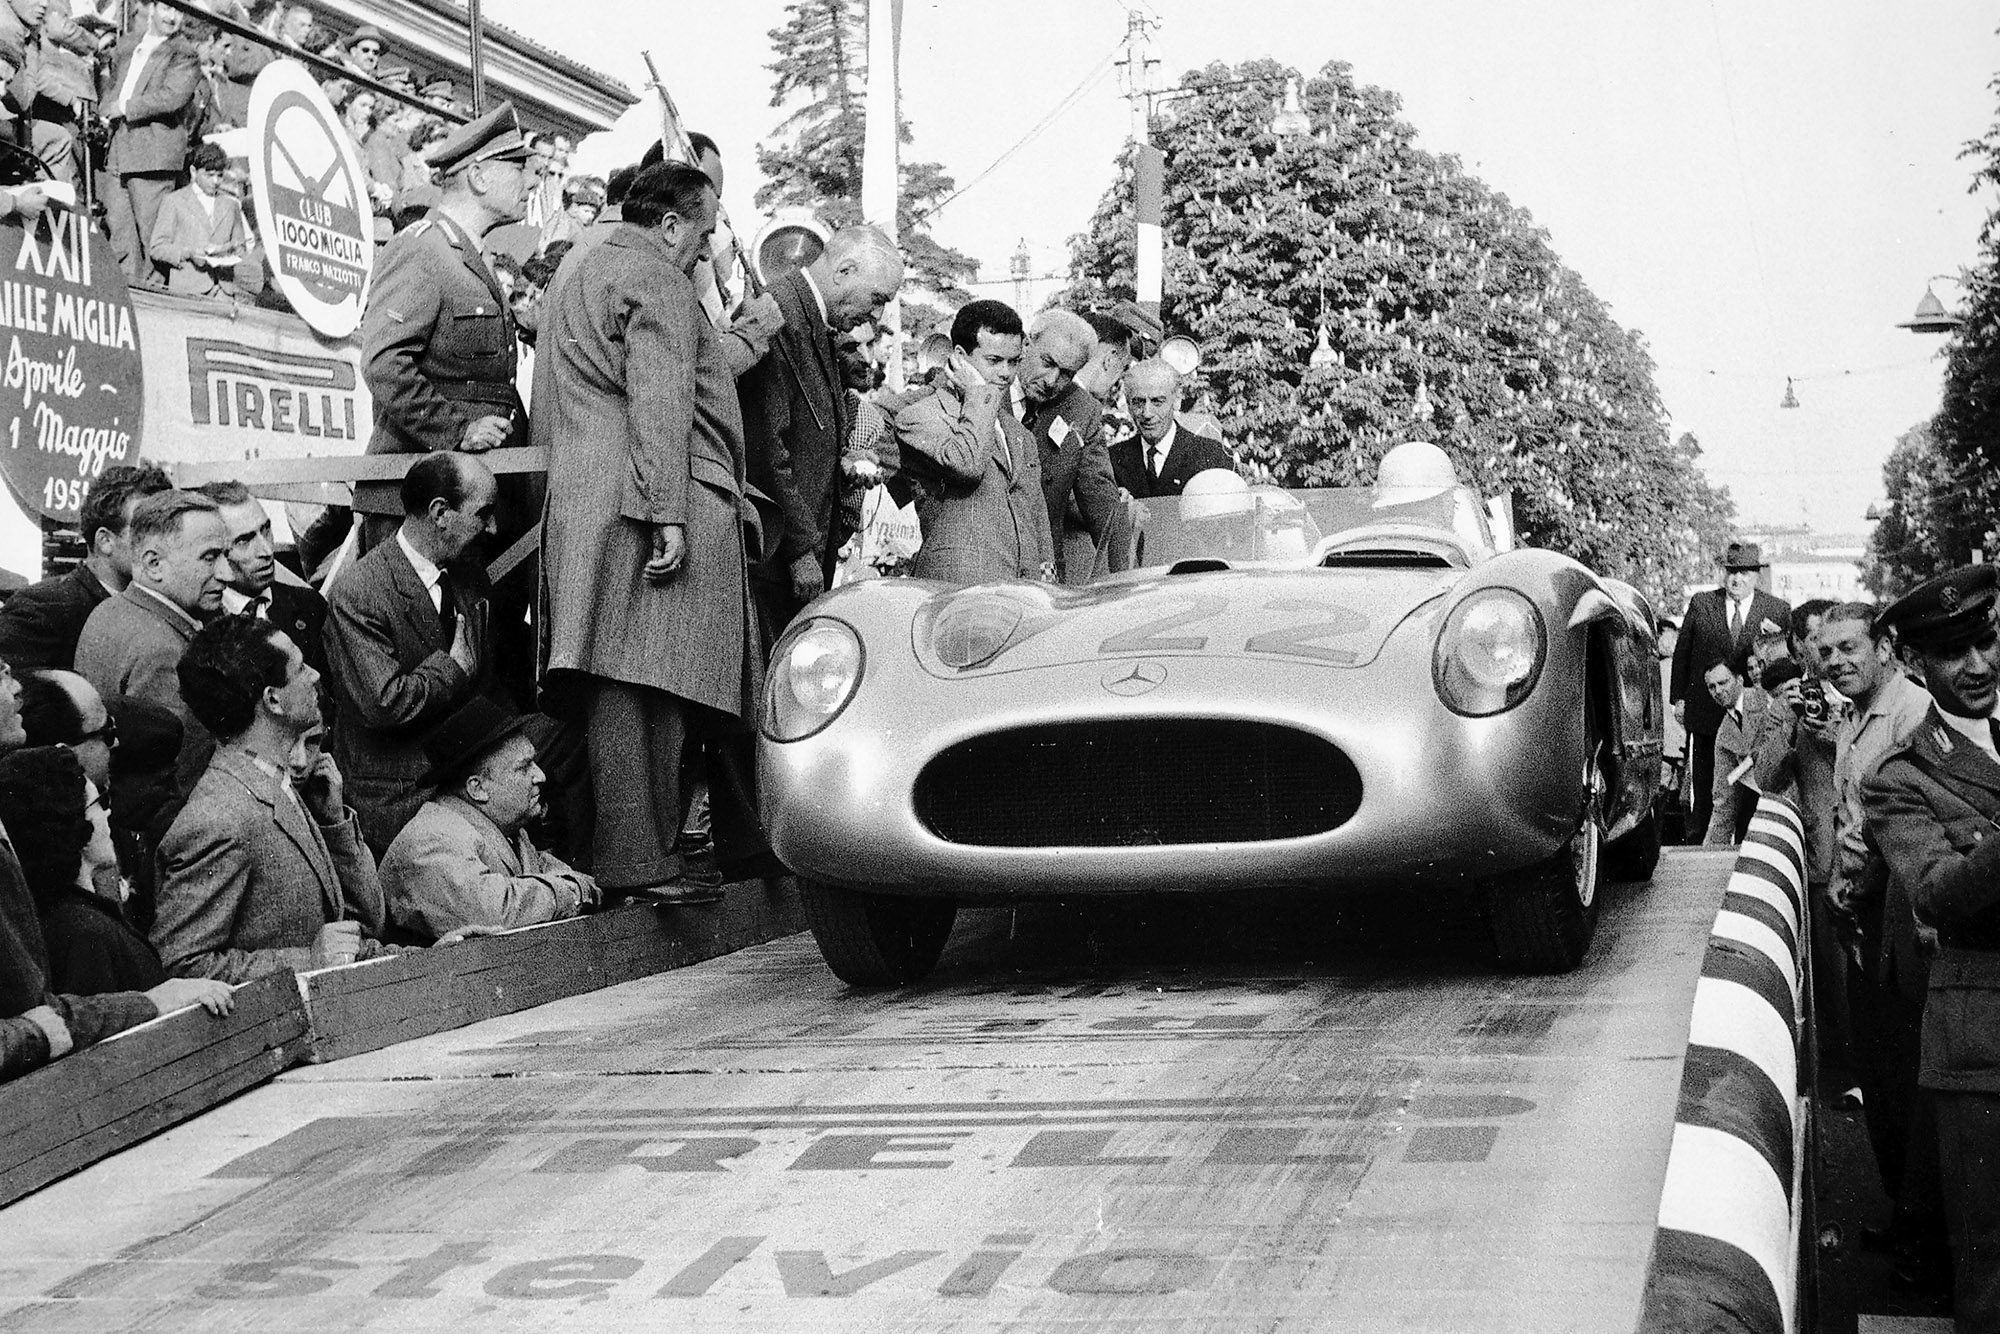 Stirling Moss and and Denis Jenkinson roll off at start of 1955 Mille Miglia Italy